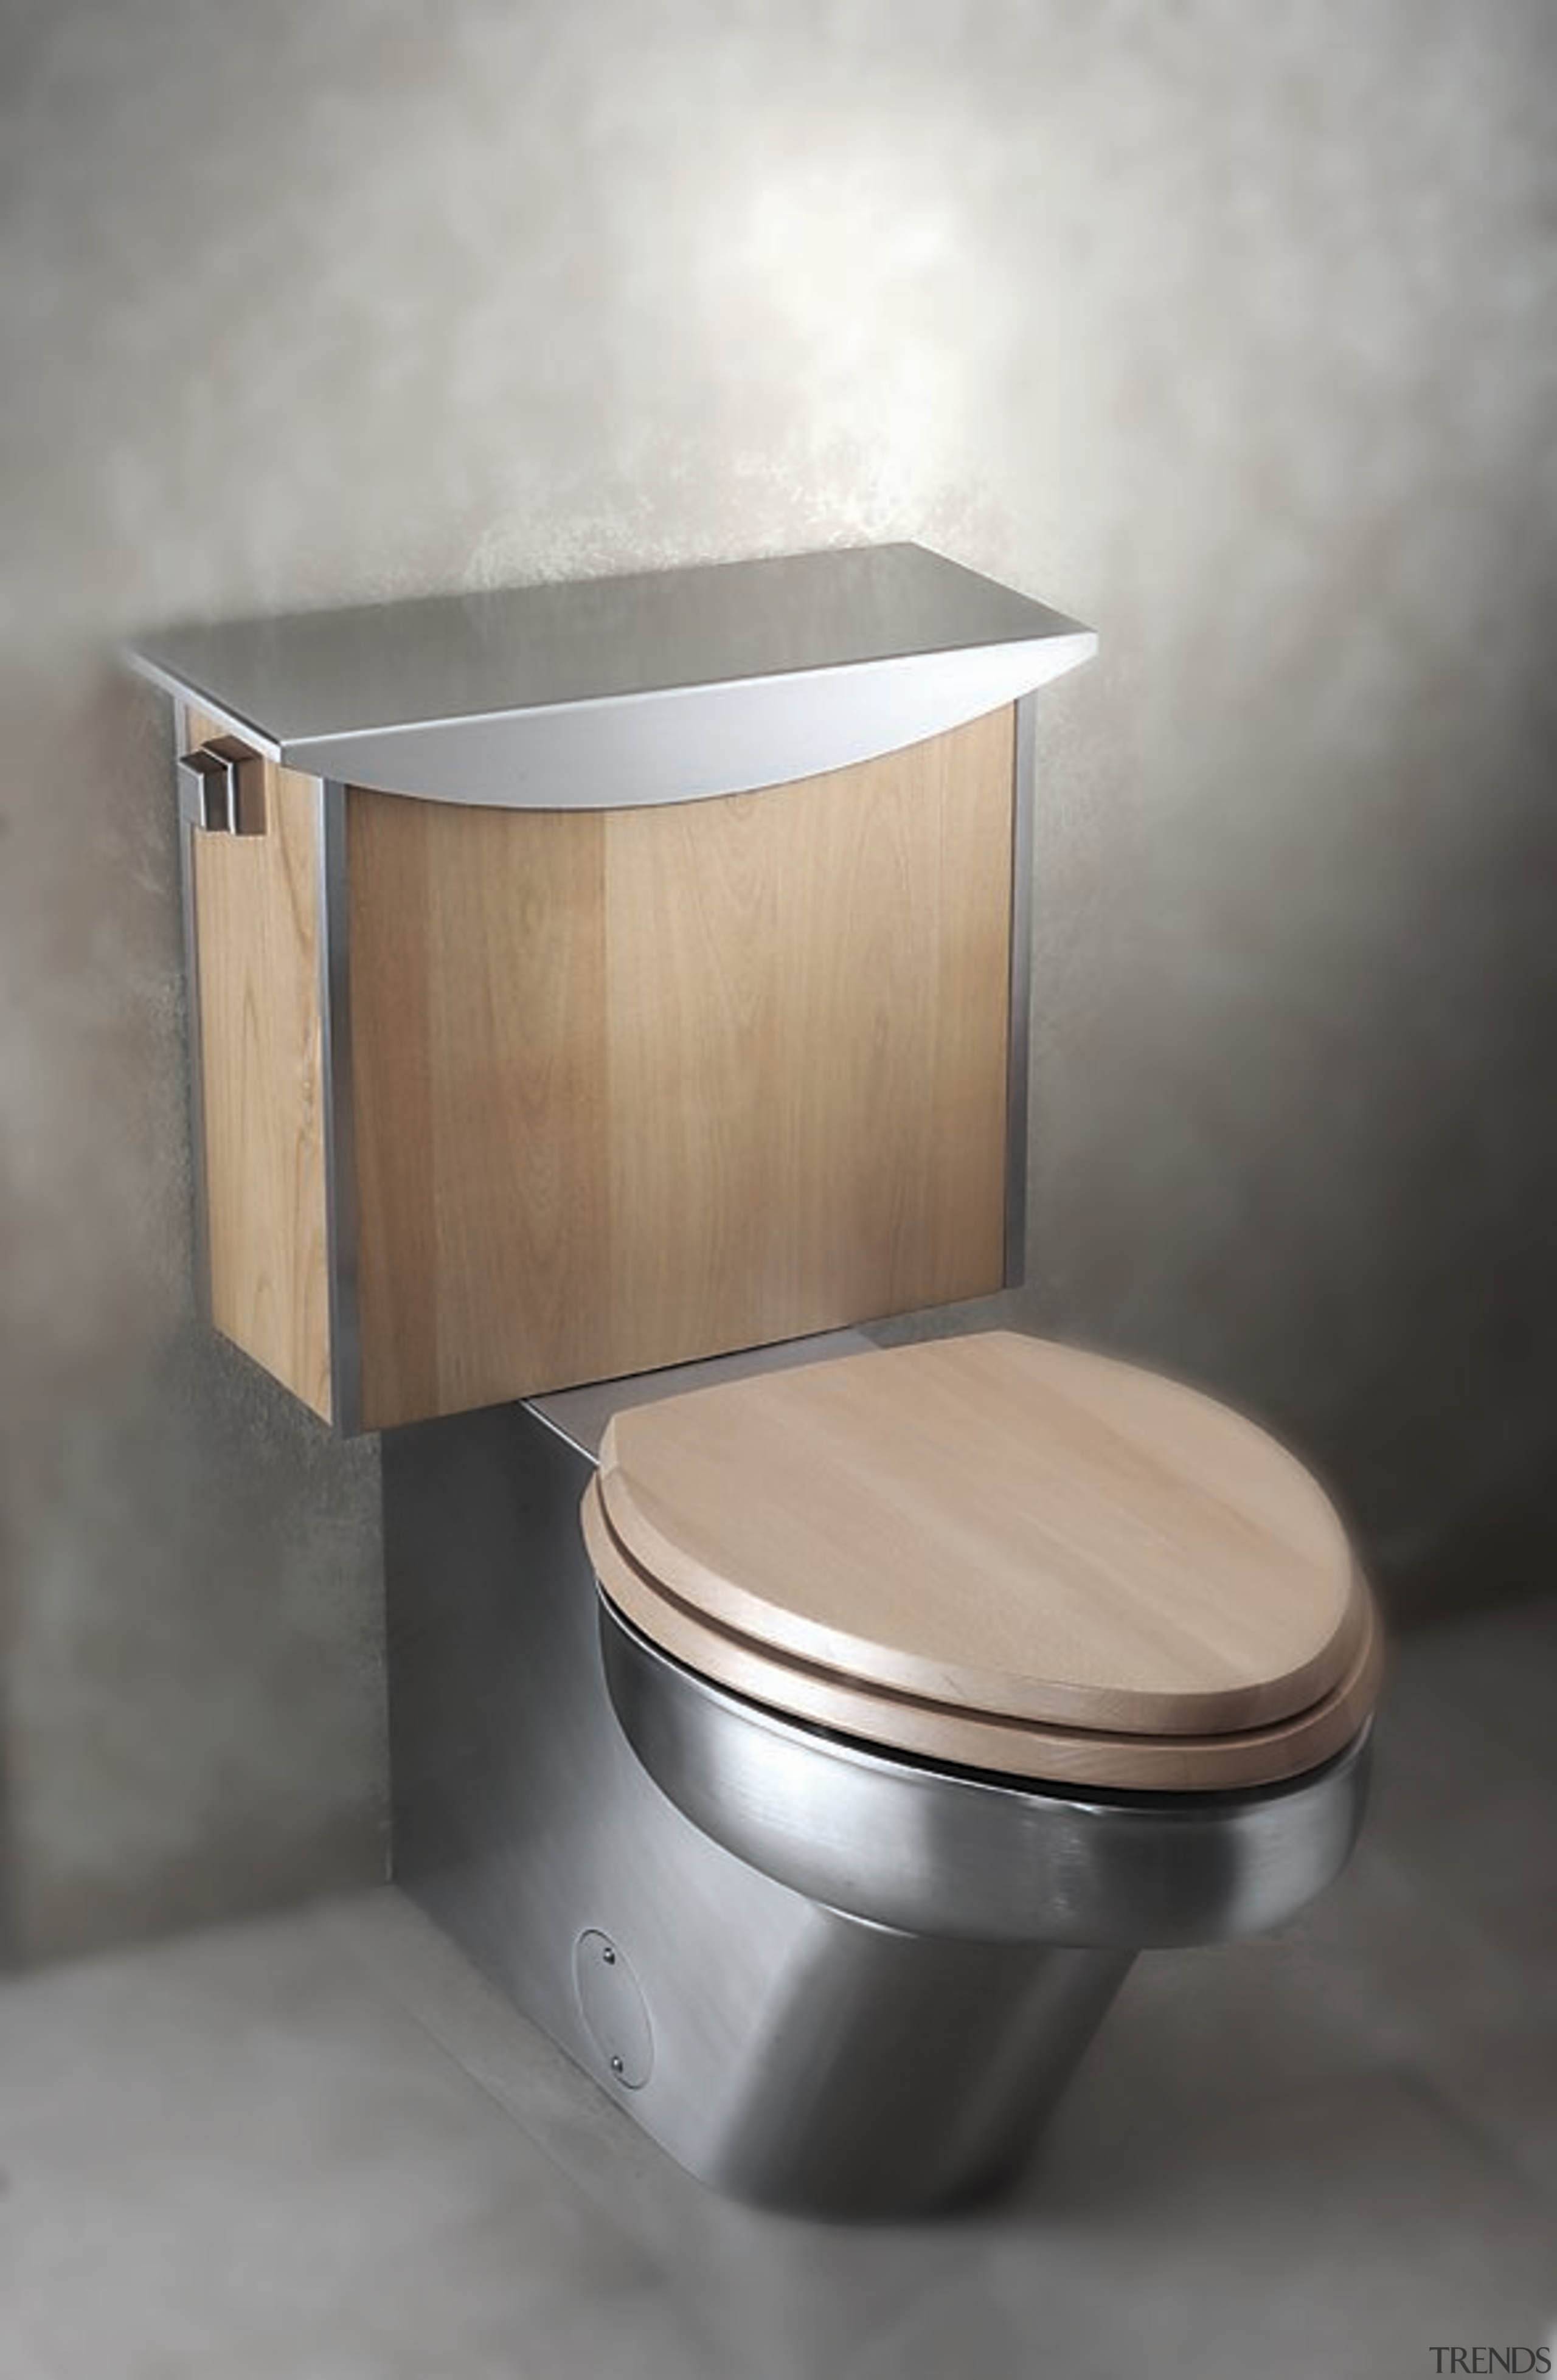 Close-up of this toilet - Close-up of this plumbing fixture, product design, gray